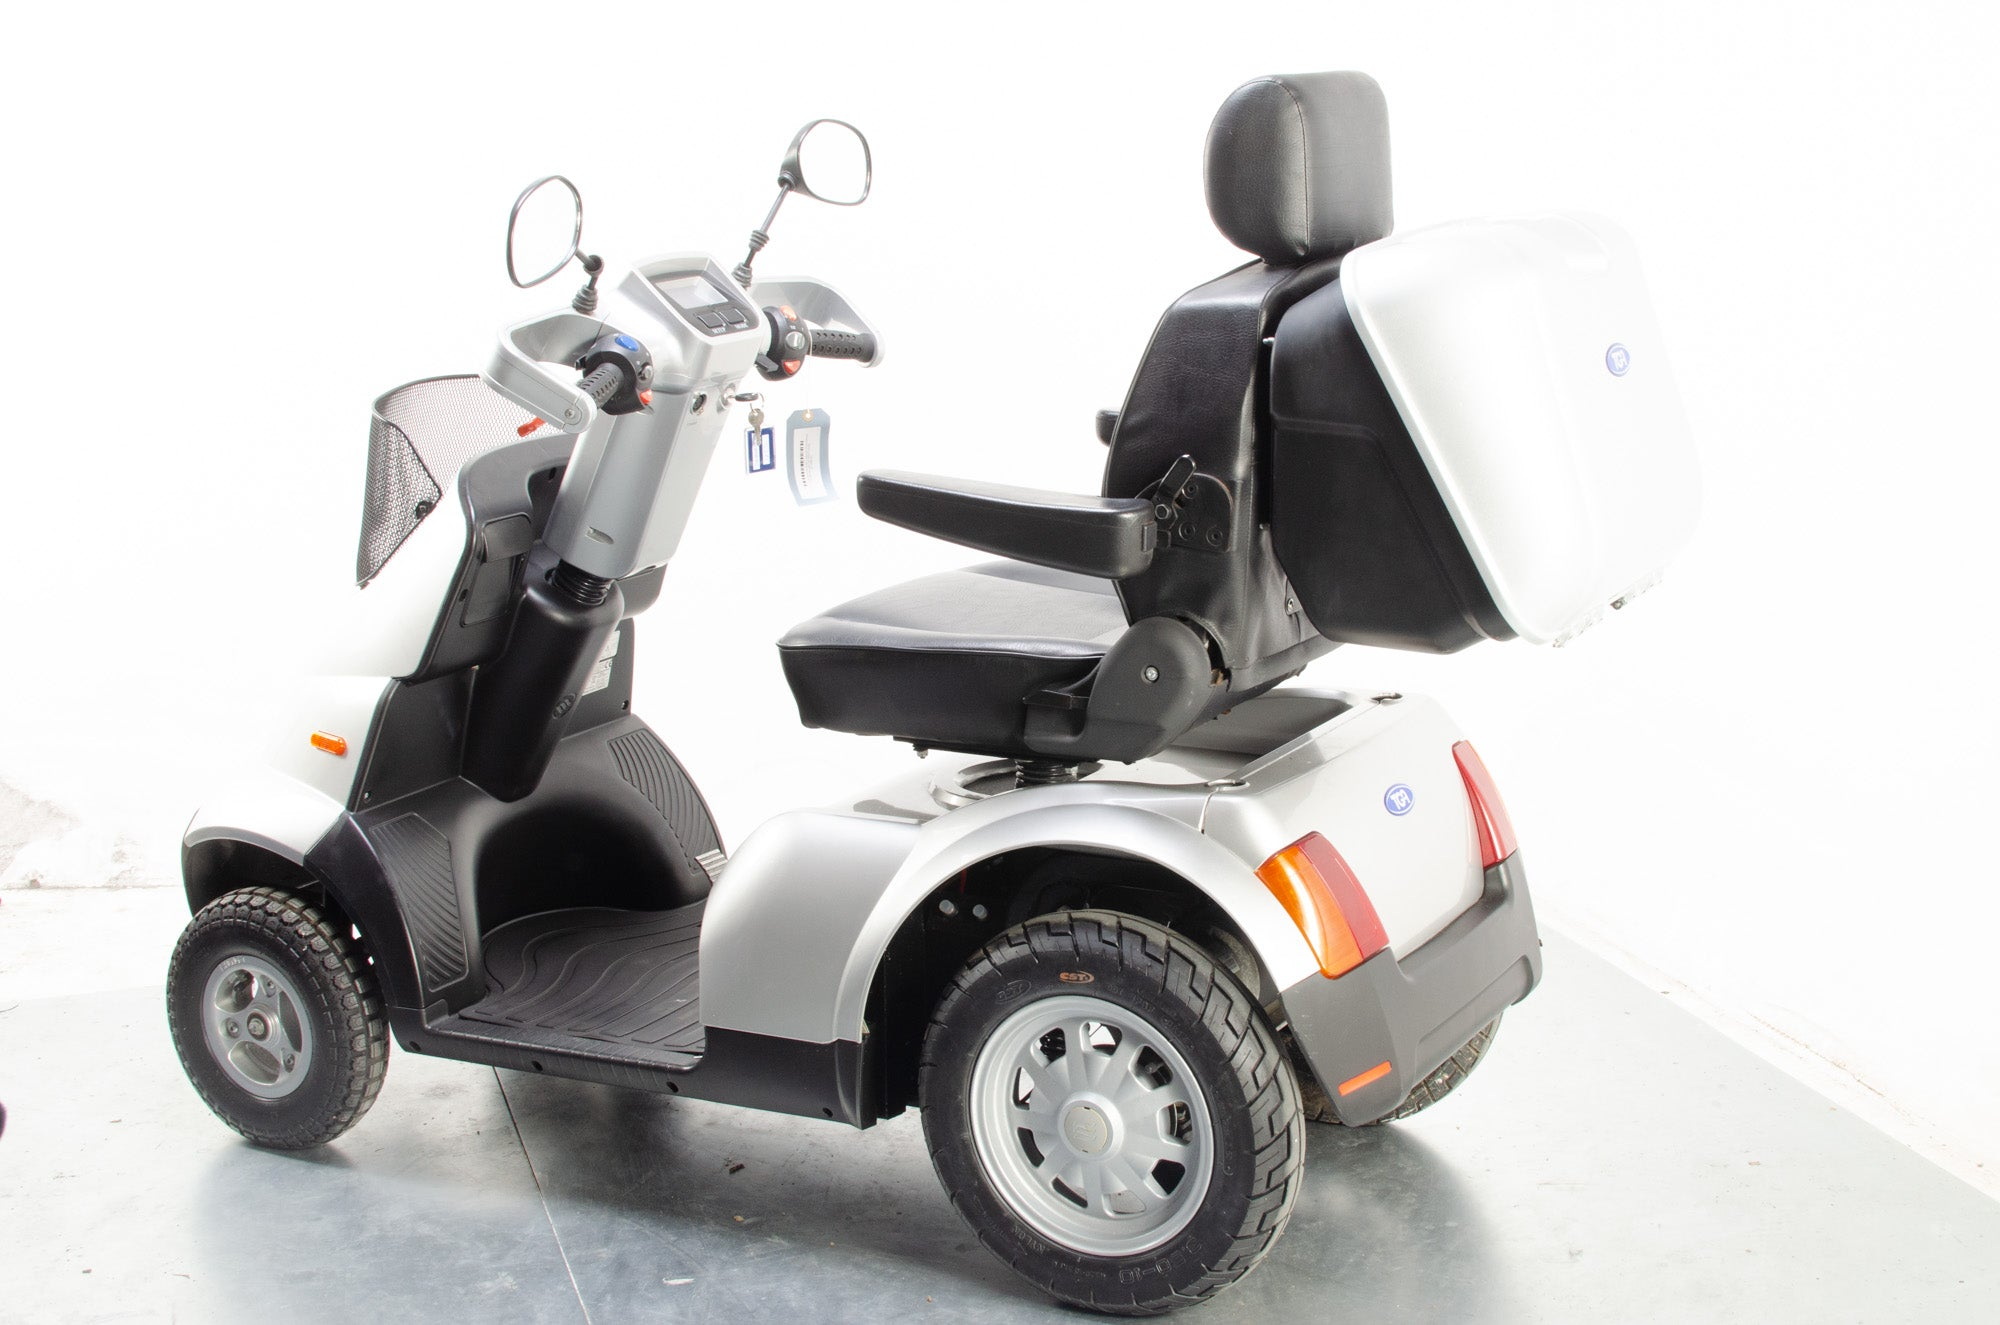 2015 TGA Breeze S4 8mph Large All Terrain Mobility Mobility Scooter